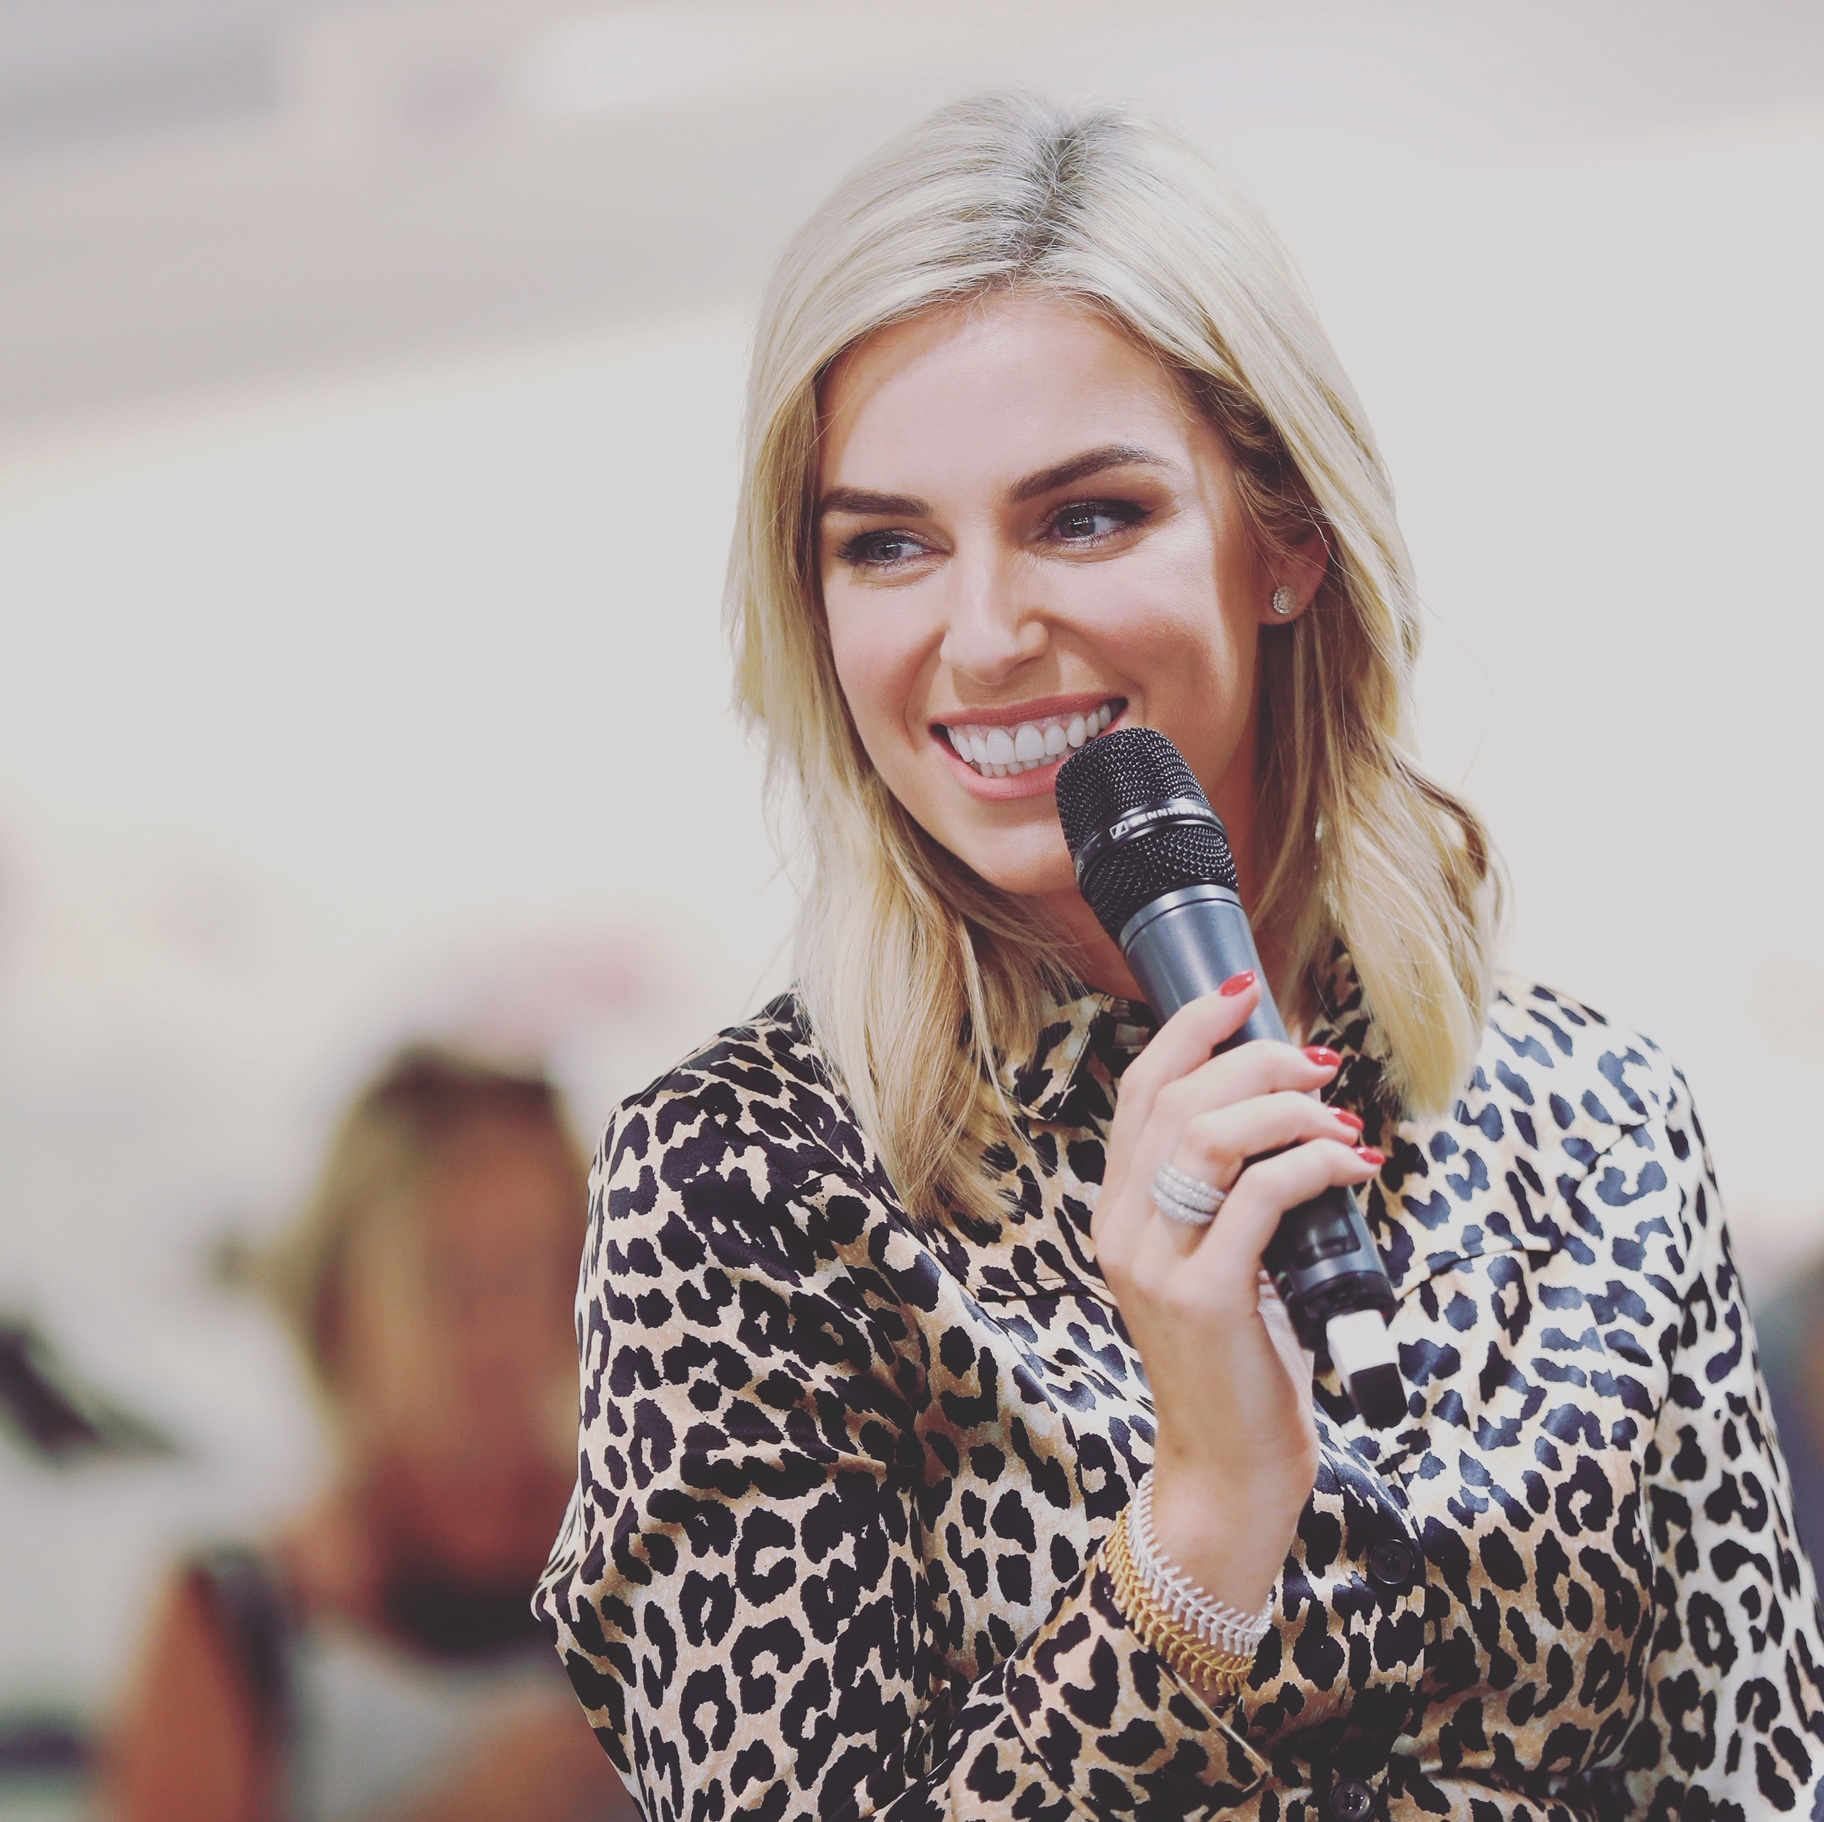 AS worn by Pippa O'Connor in Arnotts - Pippa O'Connor layering up the Gold and Silver Ariel bracelets at Arnotts fashion event